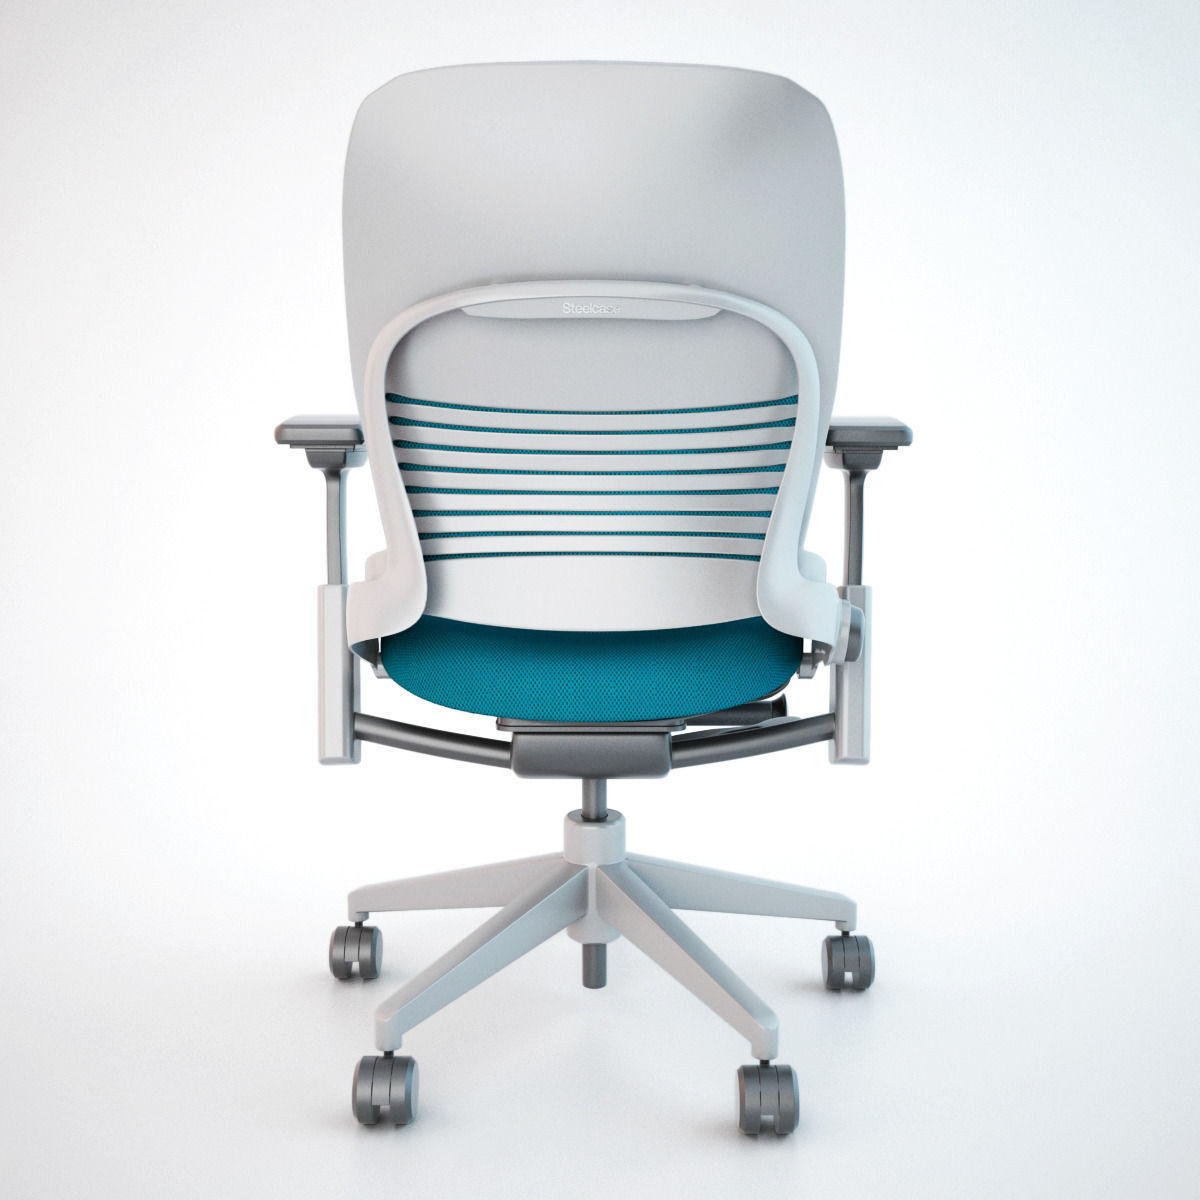 Steelcase Leap Office Chair 3D model | CGTrader